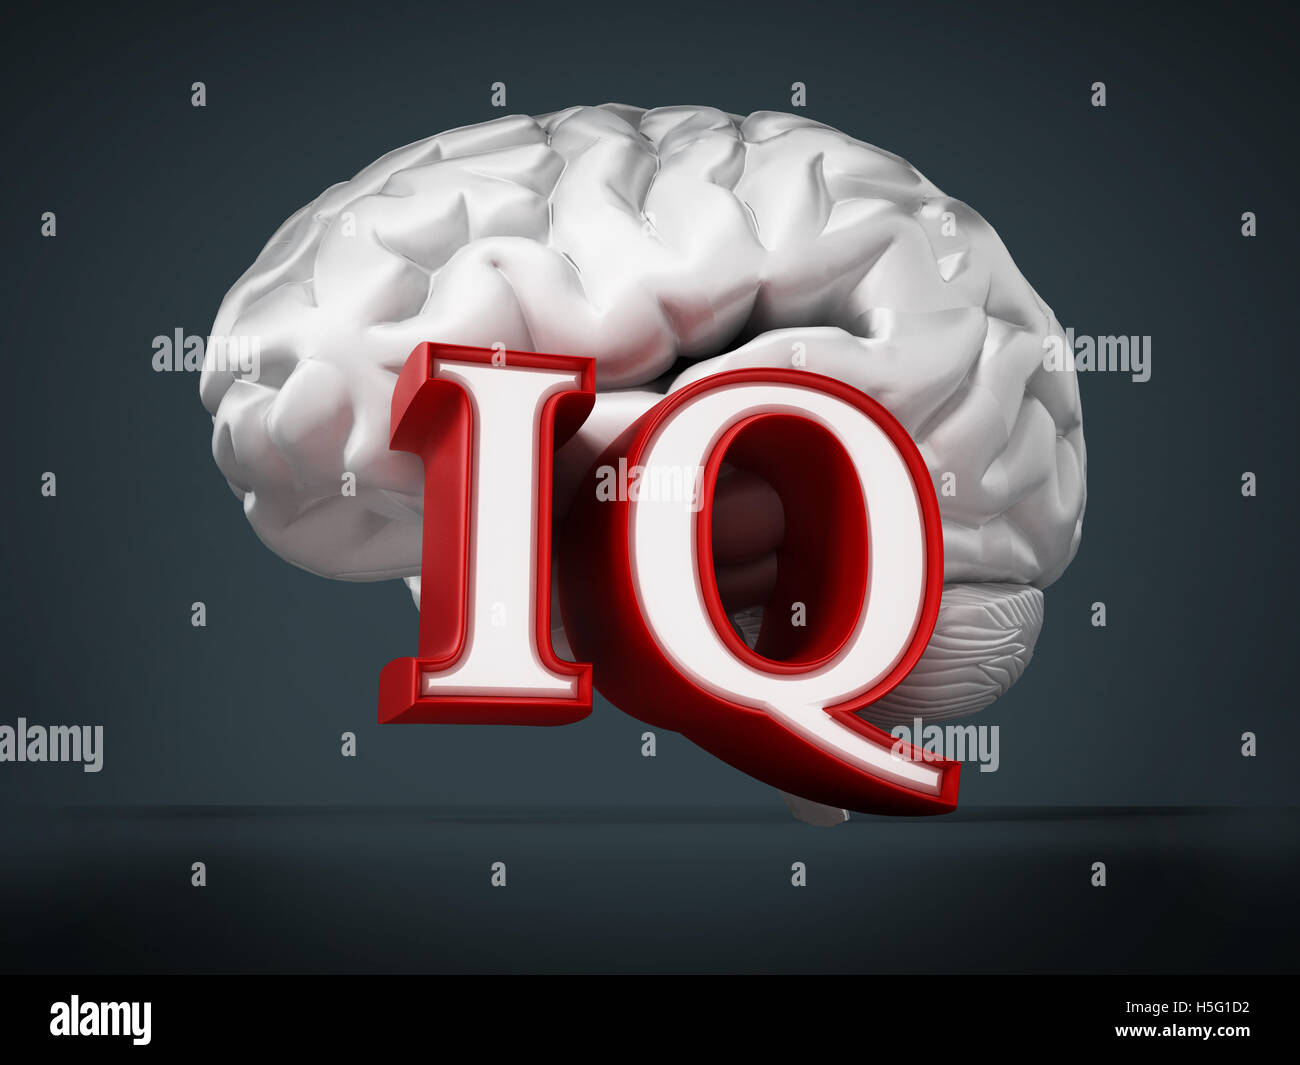 Human brain and IQ word on black background. 3D illustration. - Stock Image